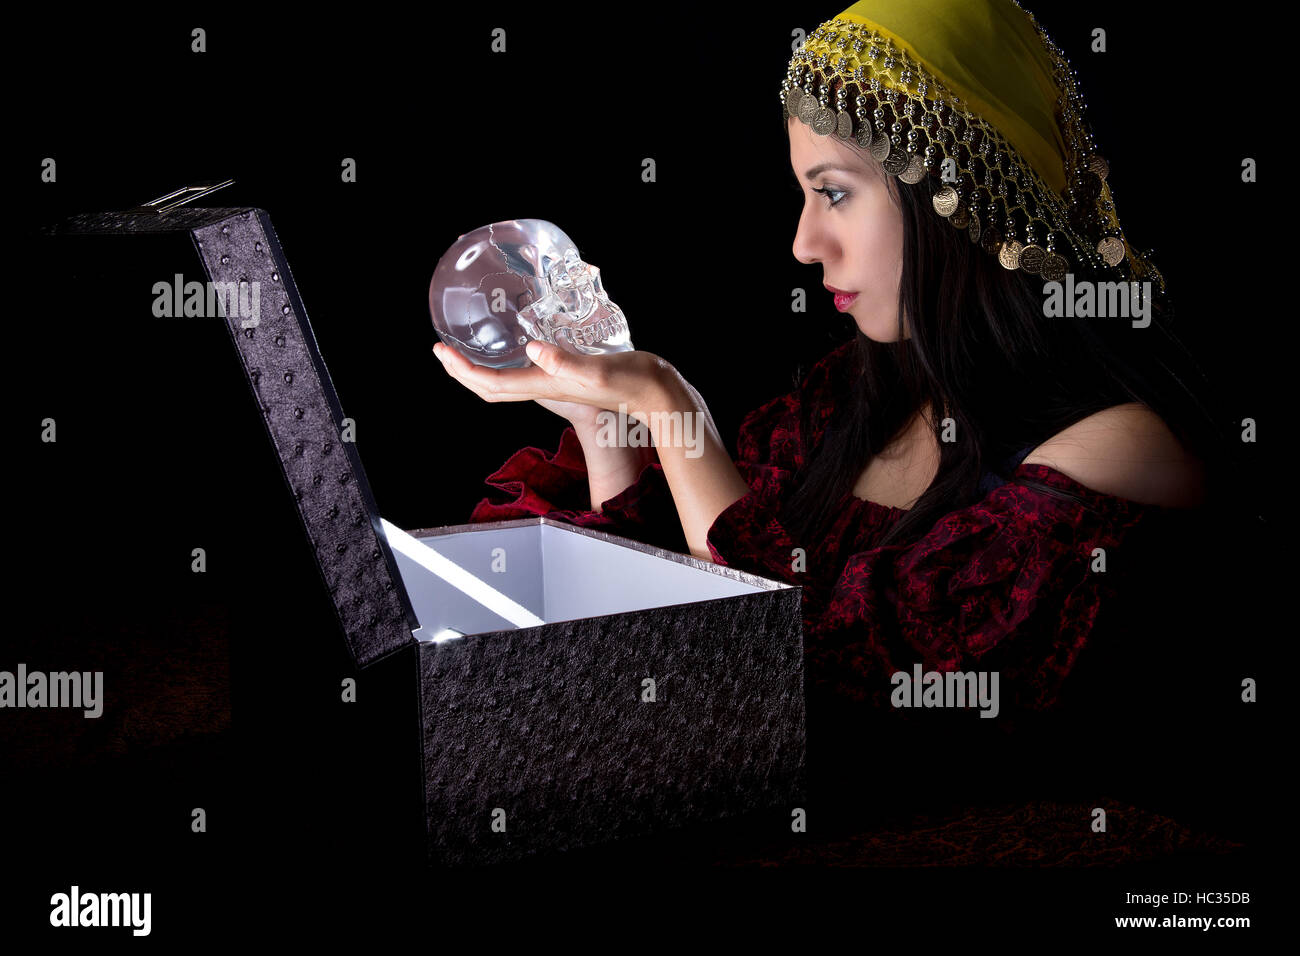 Fortune teller or gypsy opening a glowing mysterious box and discovering treasure.  She is receiving a magical gift - Stock Image